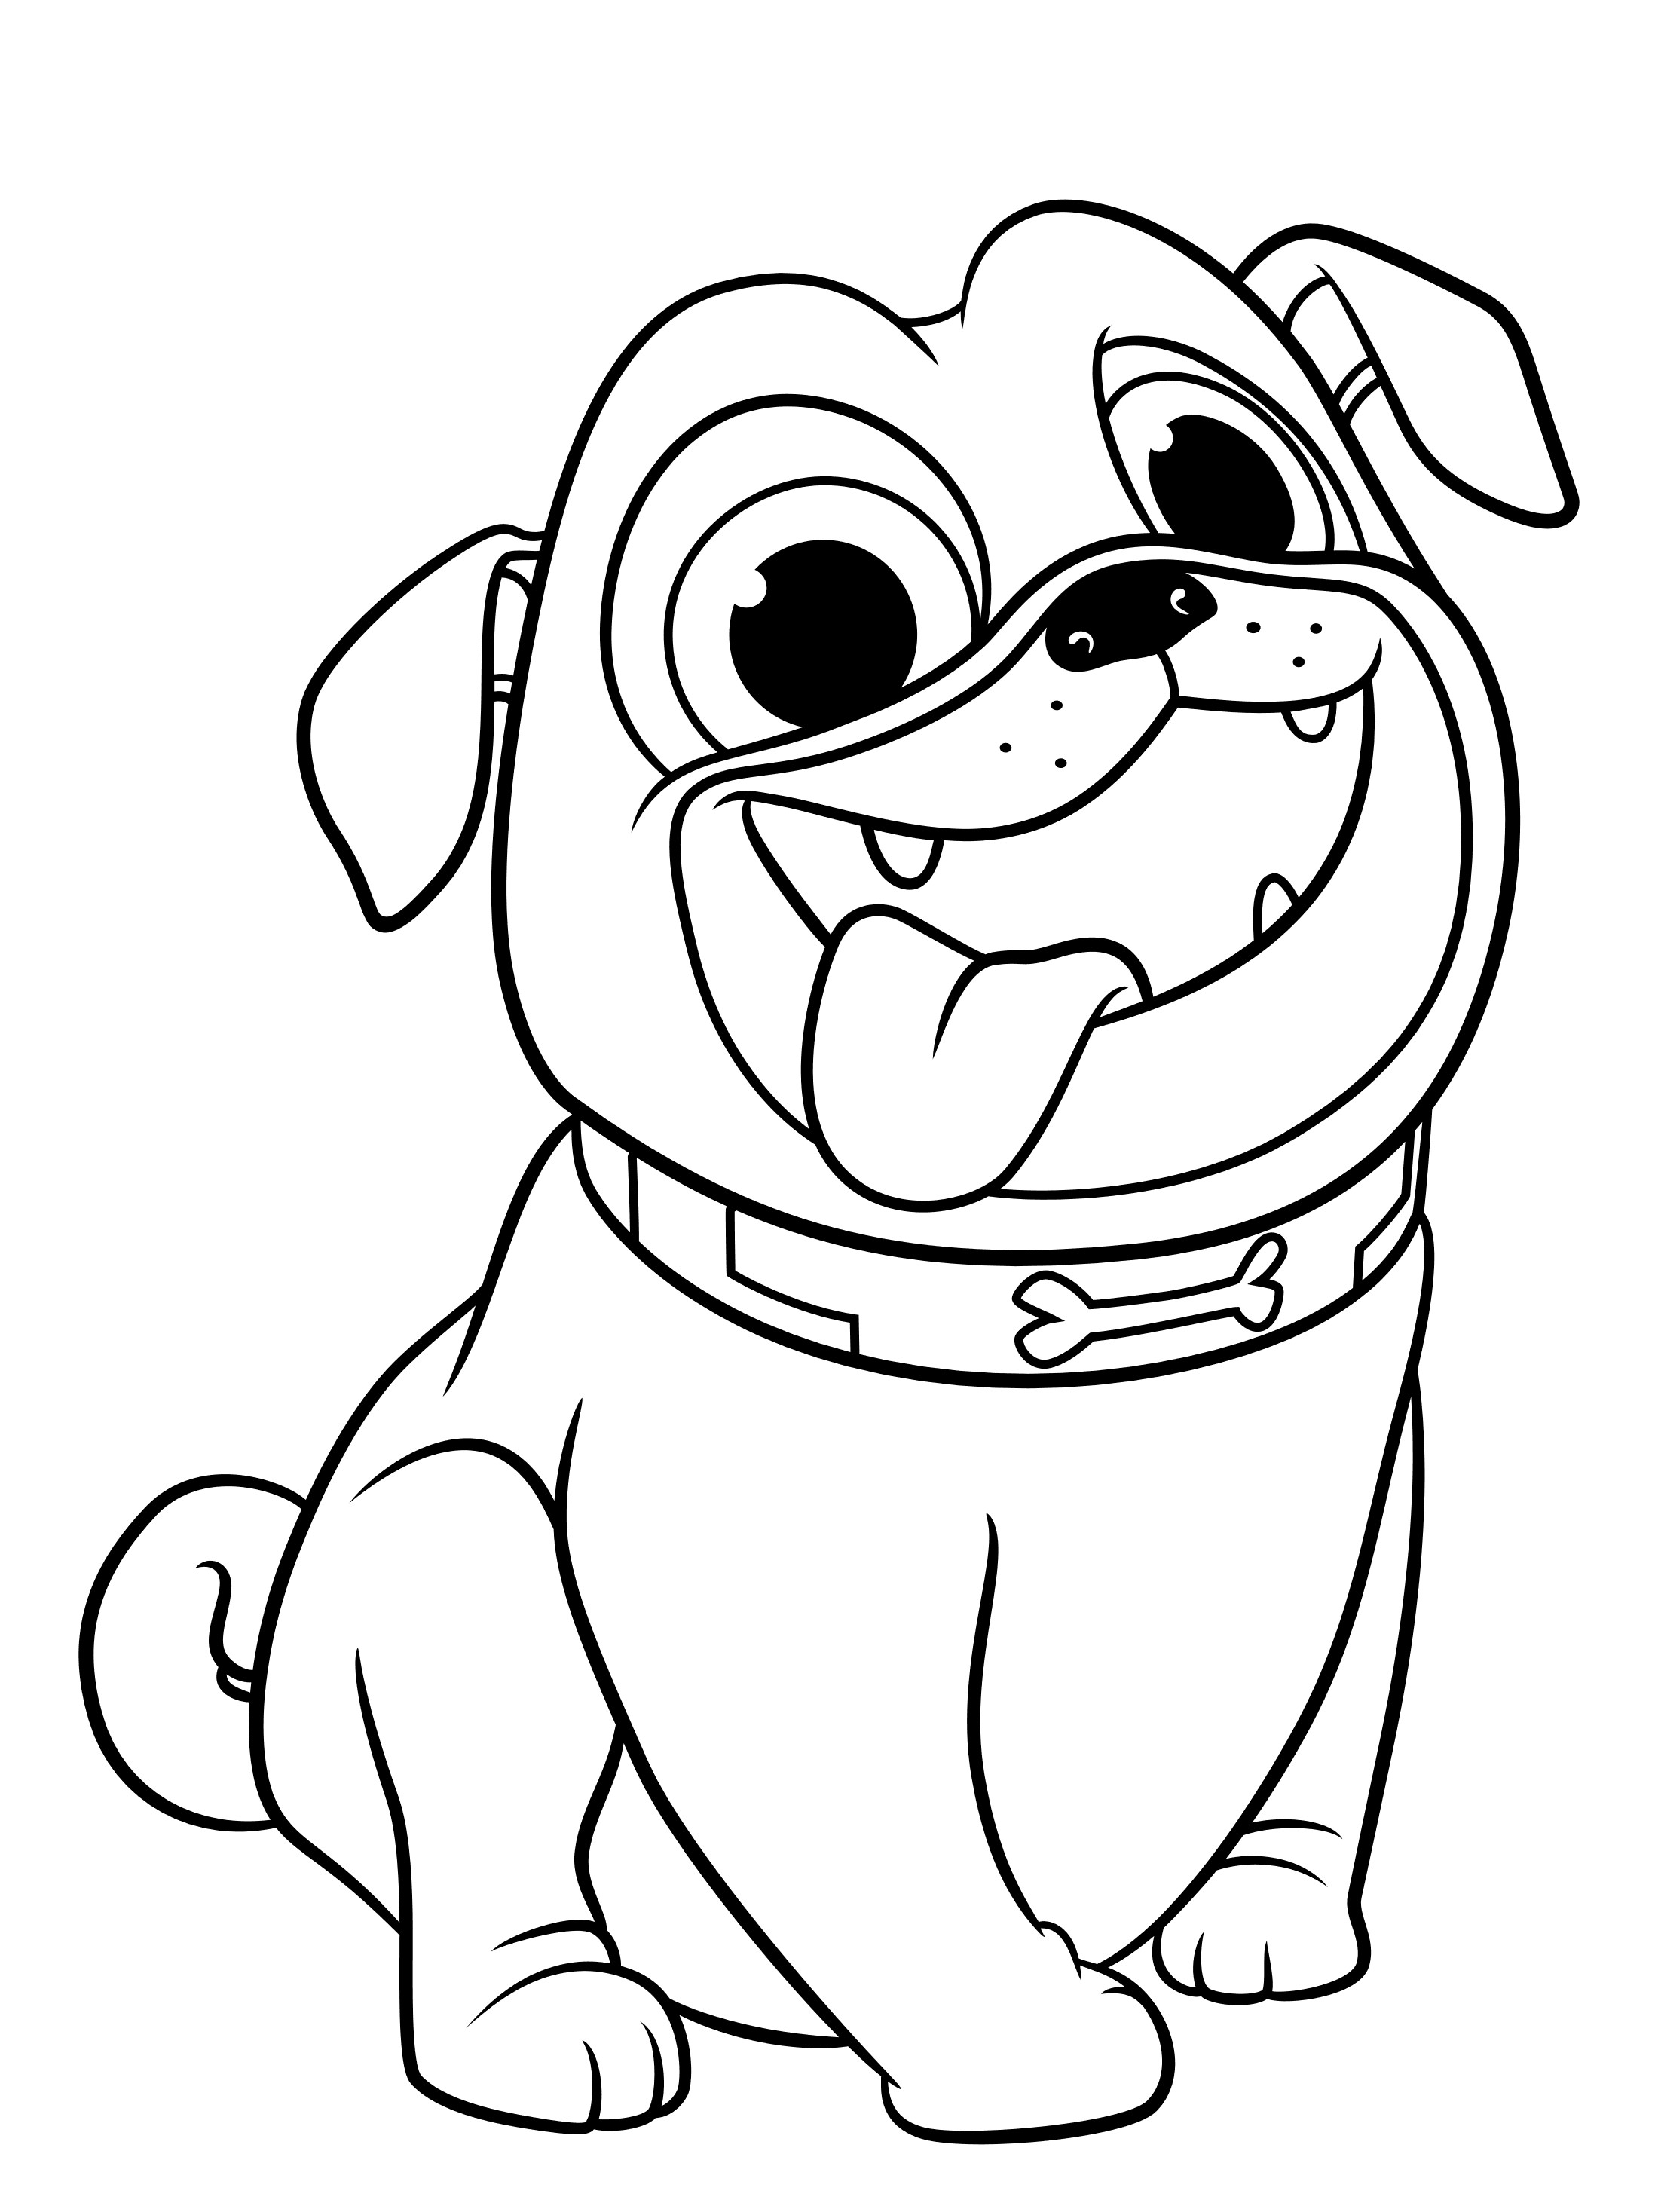 dog coloring dog coloring pages 2018 dr odd coloring dog